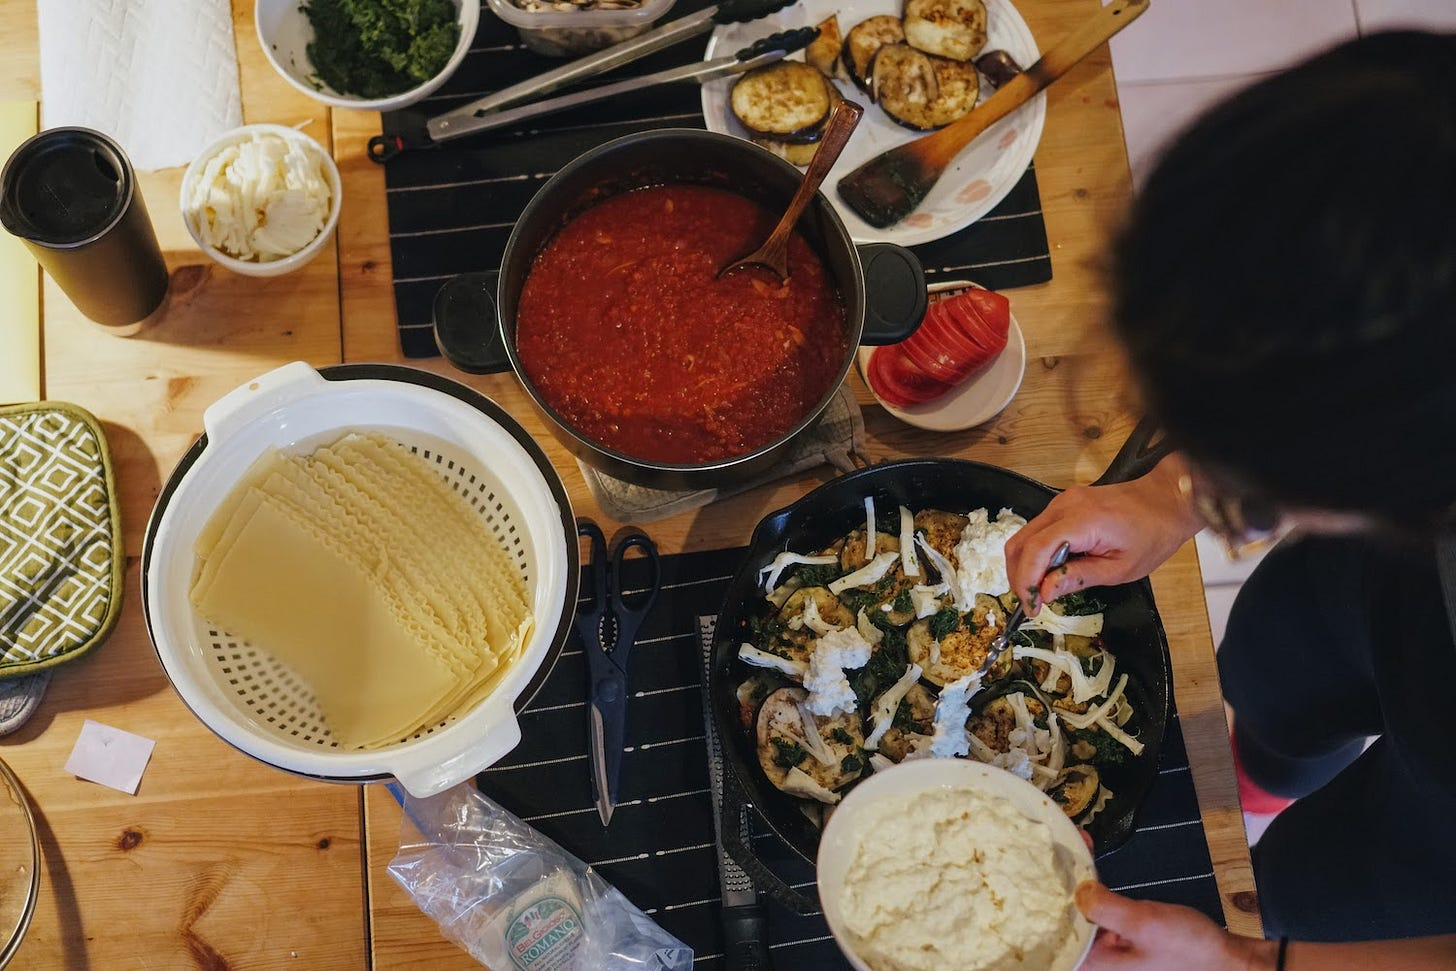 Ingredients for lasagna being assembled in a cast iron